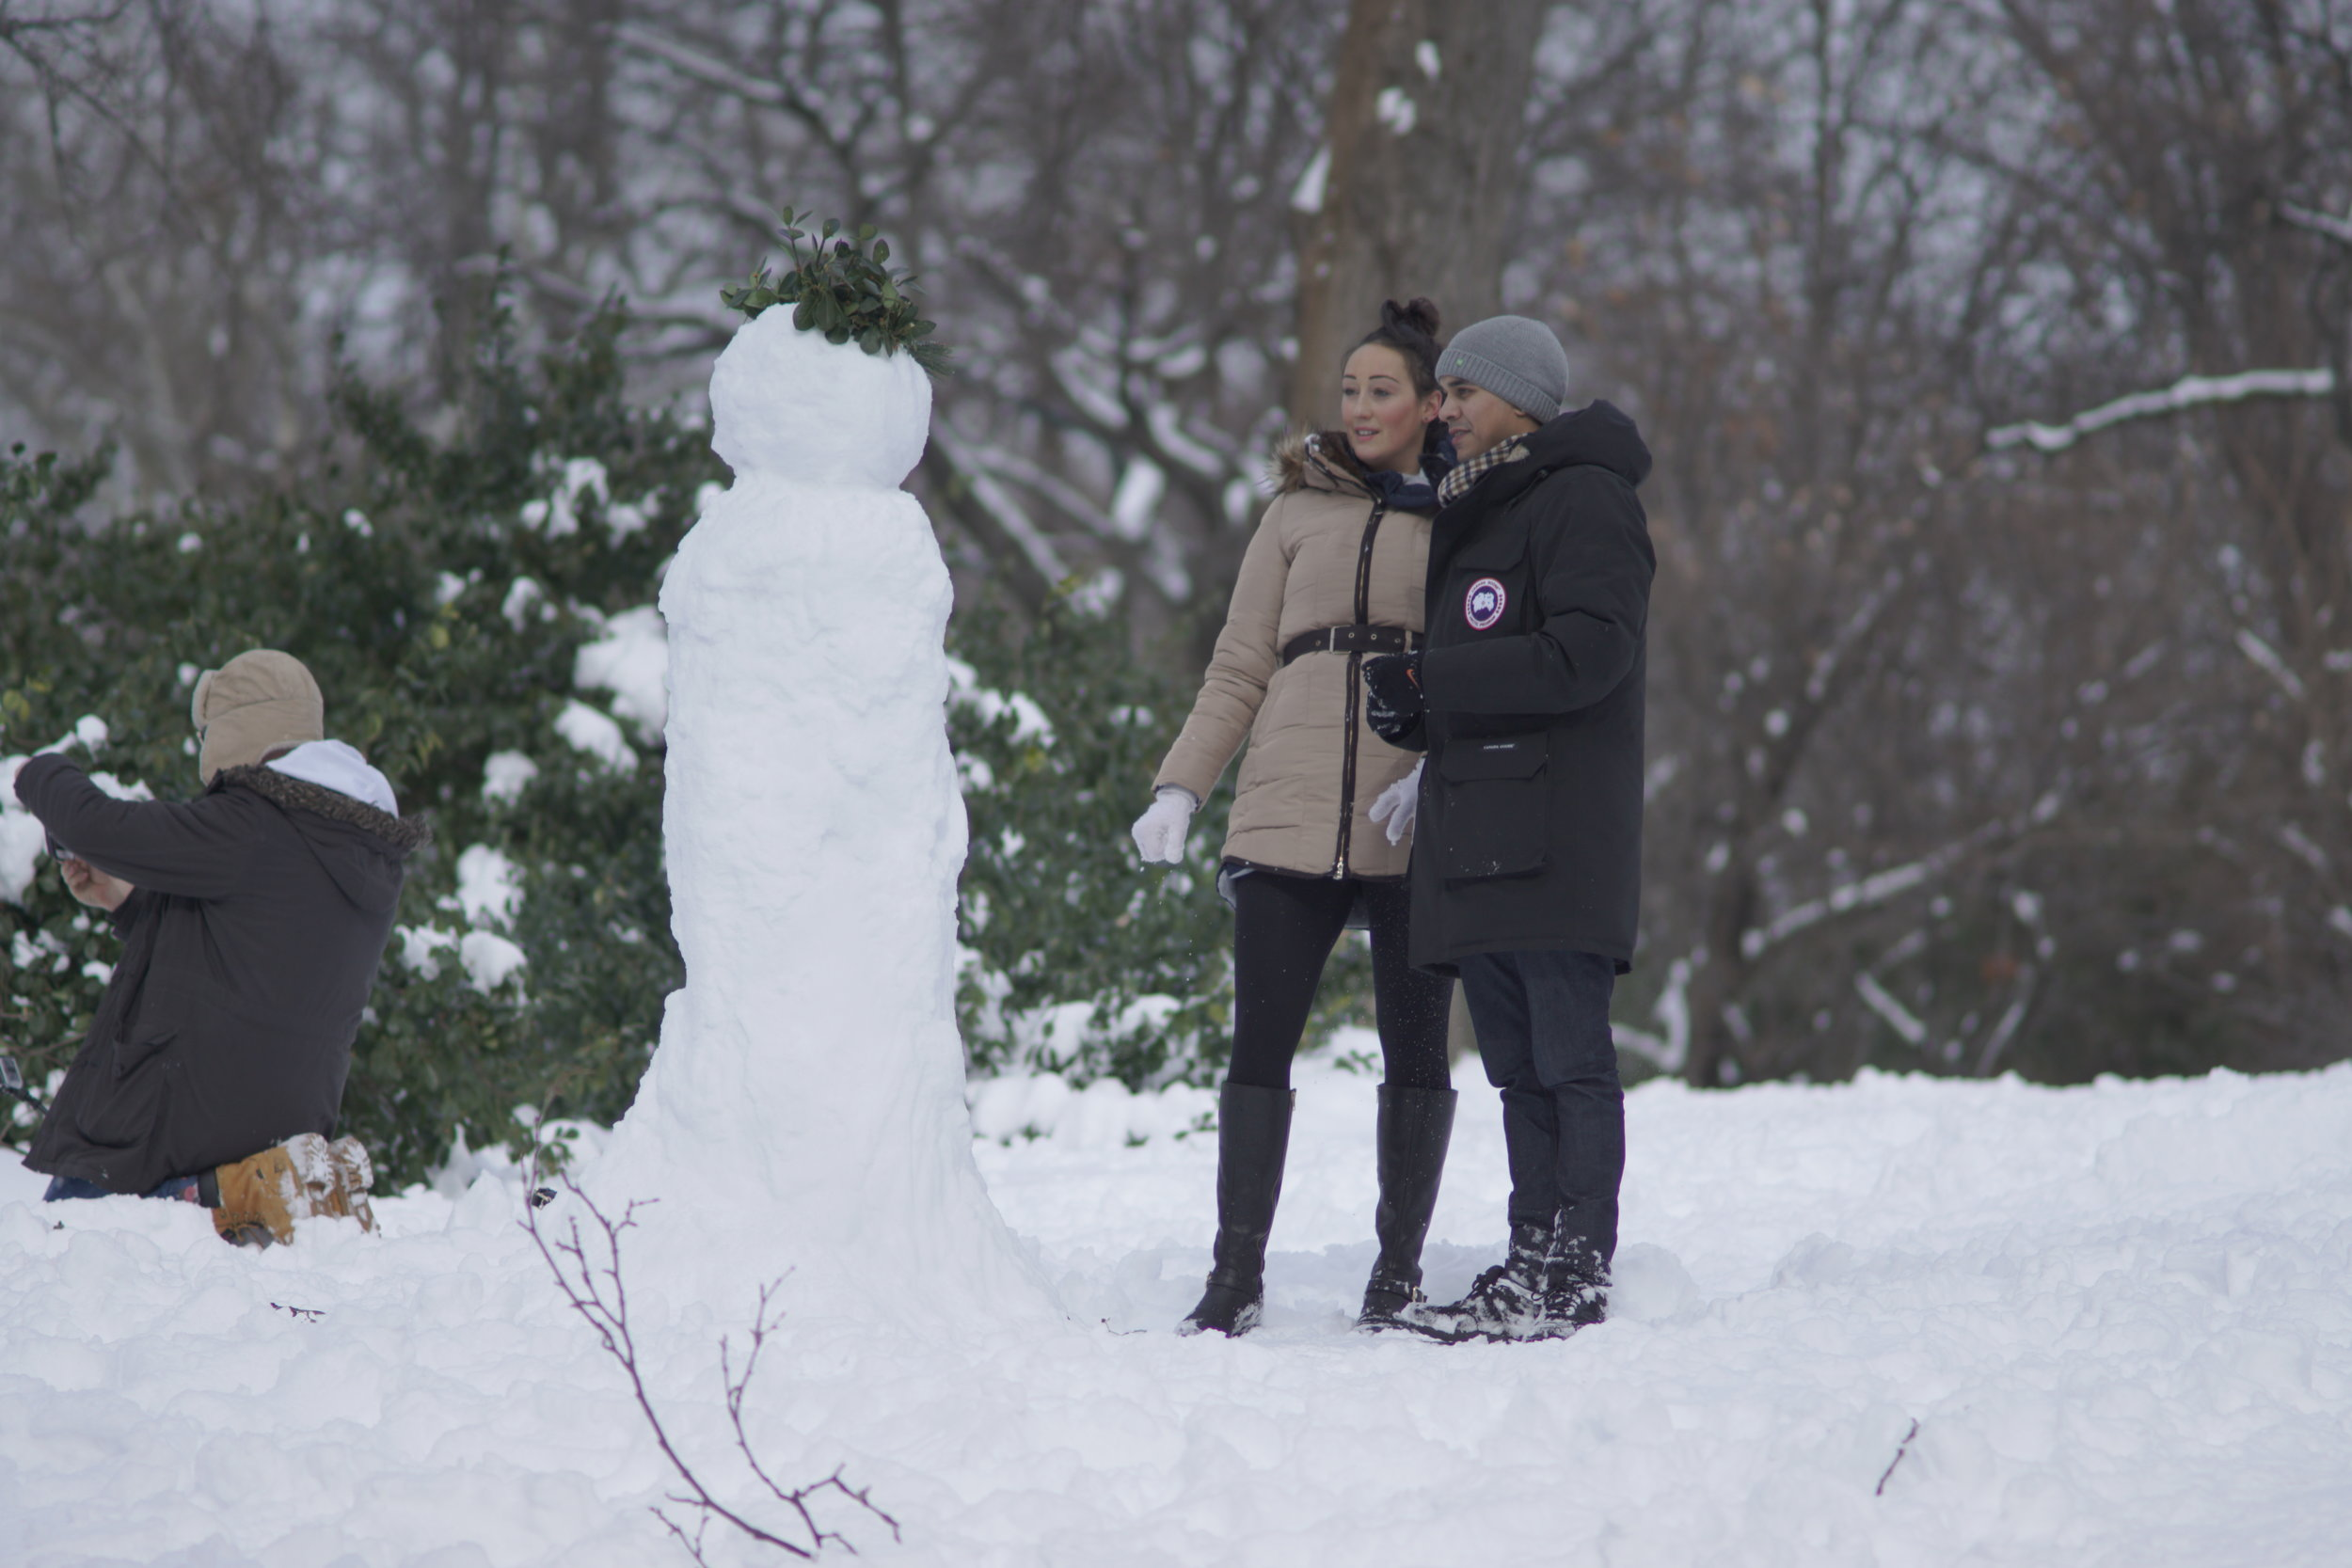 Evaluating Snowman | Central Park | Sony A6000, Canon FD 135mm 2.8